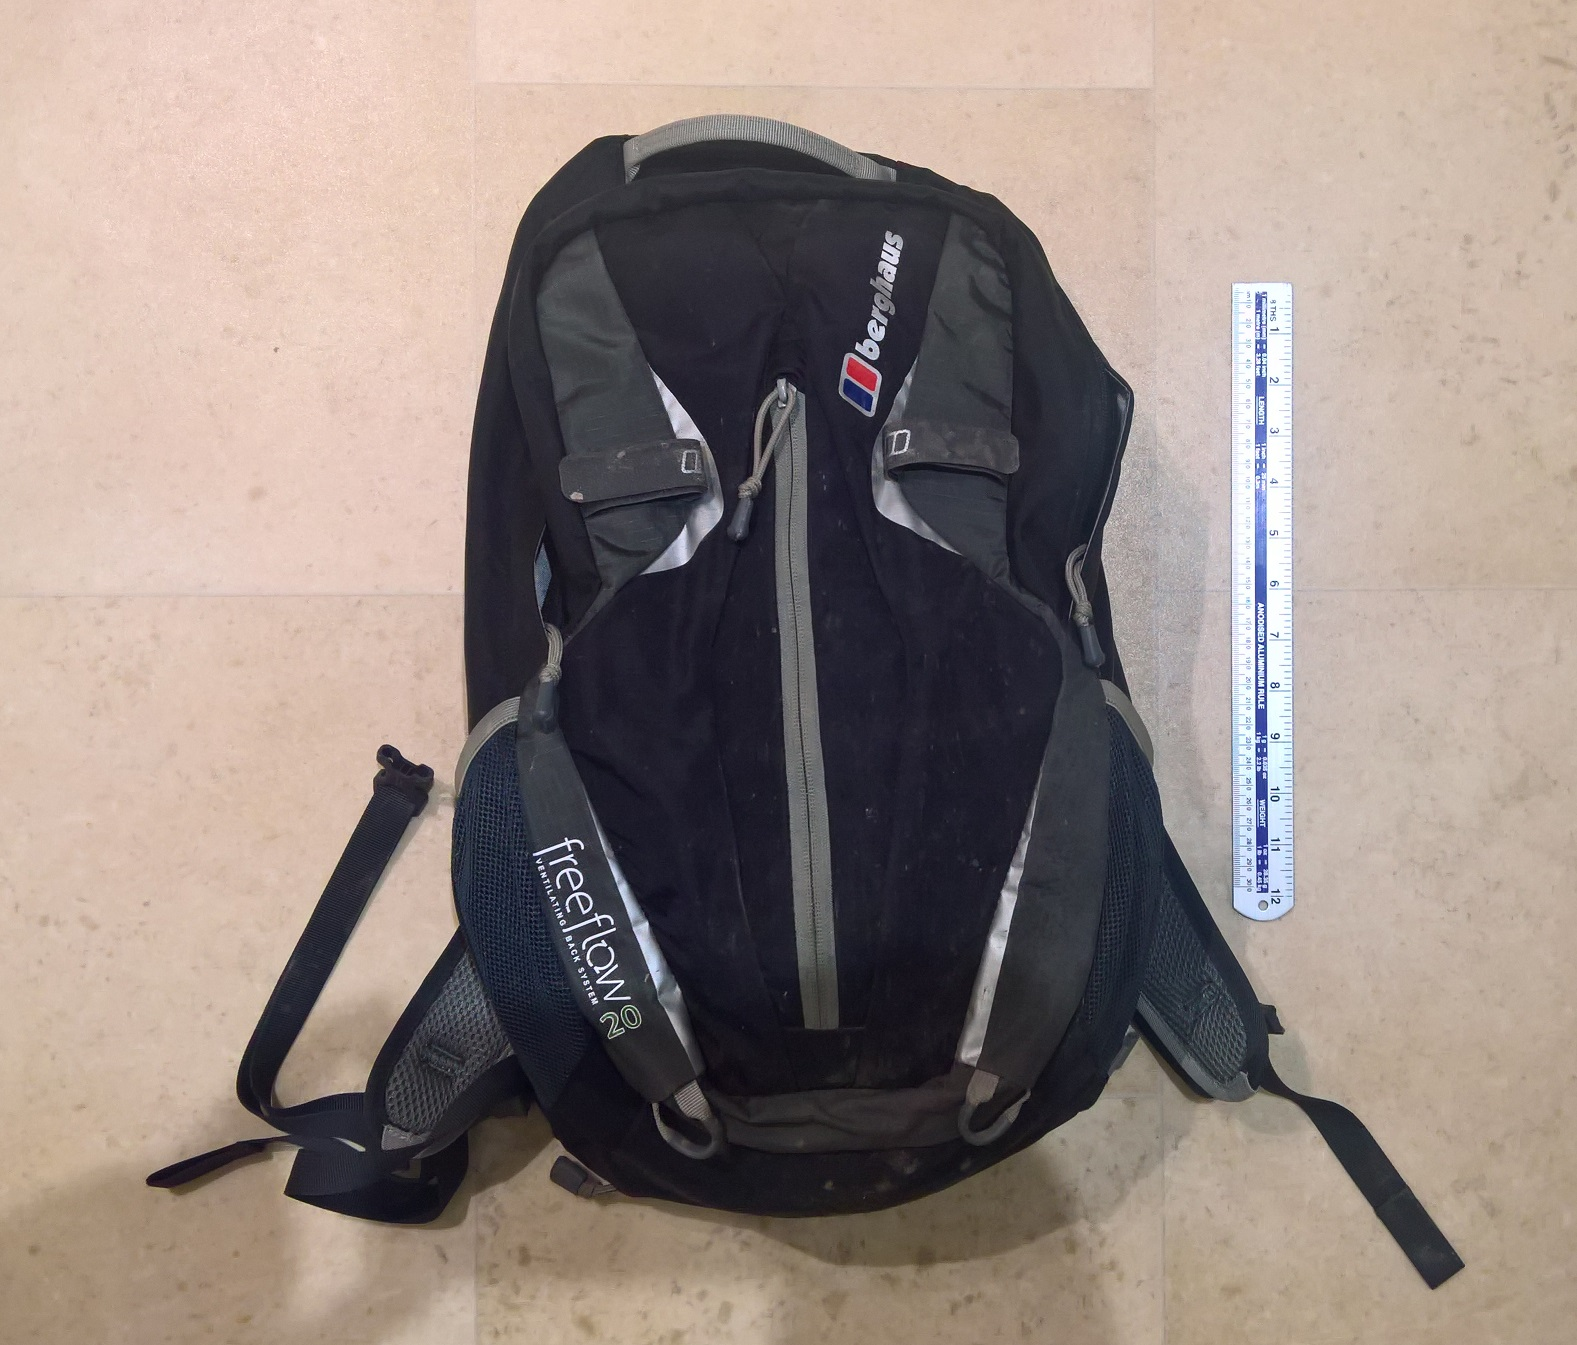 battery-in-rucksack-jpg.9576